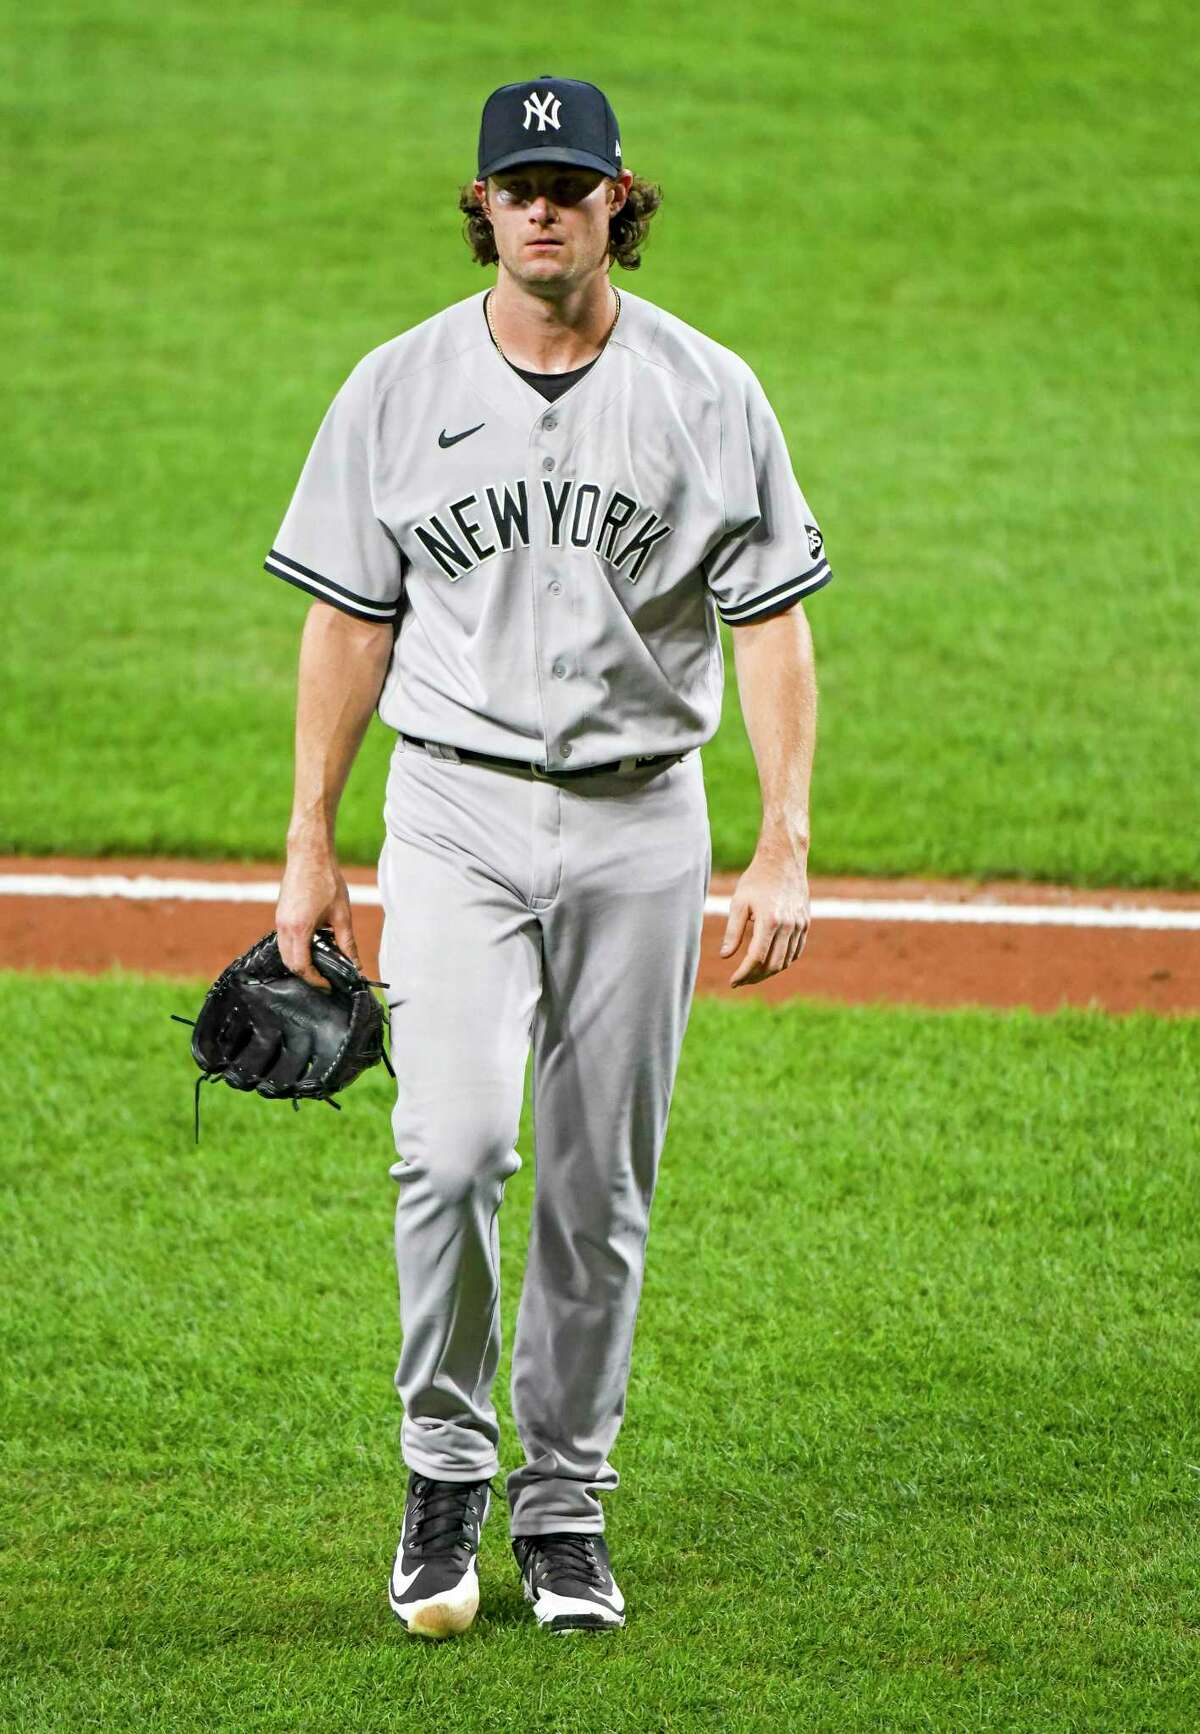 BALTIMORE, MD - JULY 29: New York Yankees starting pitcher Gerrit Cole (45) leaves the game against the Baltimore Orioles in the seventh inning on July 29, 2020, at Orioles Park at Camden Yards, in Baltimore, MD. (Photo by Mark Goldman/Icon Sportswire via Getty Images)